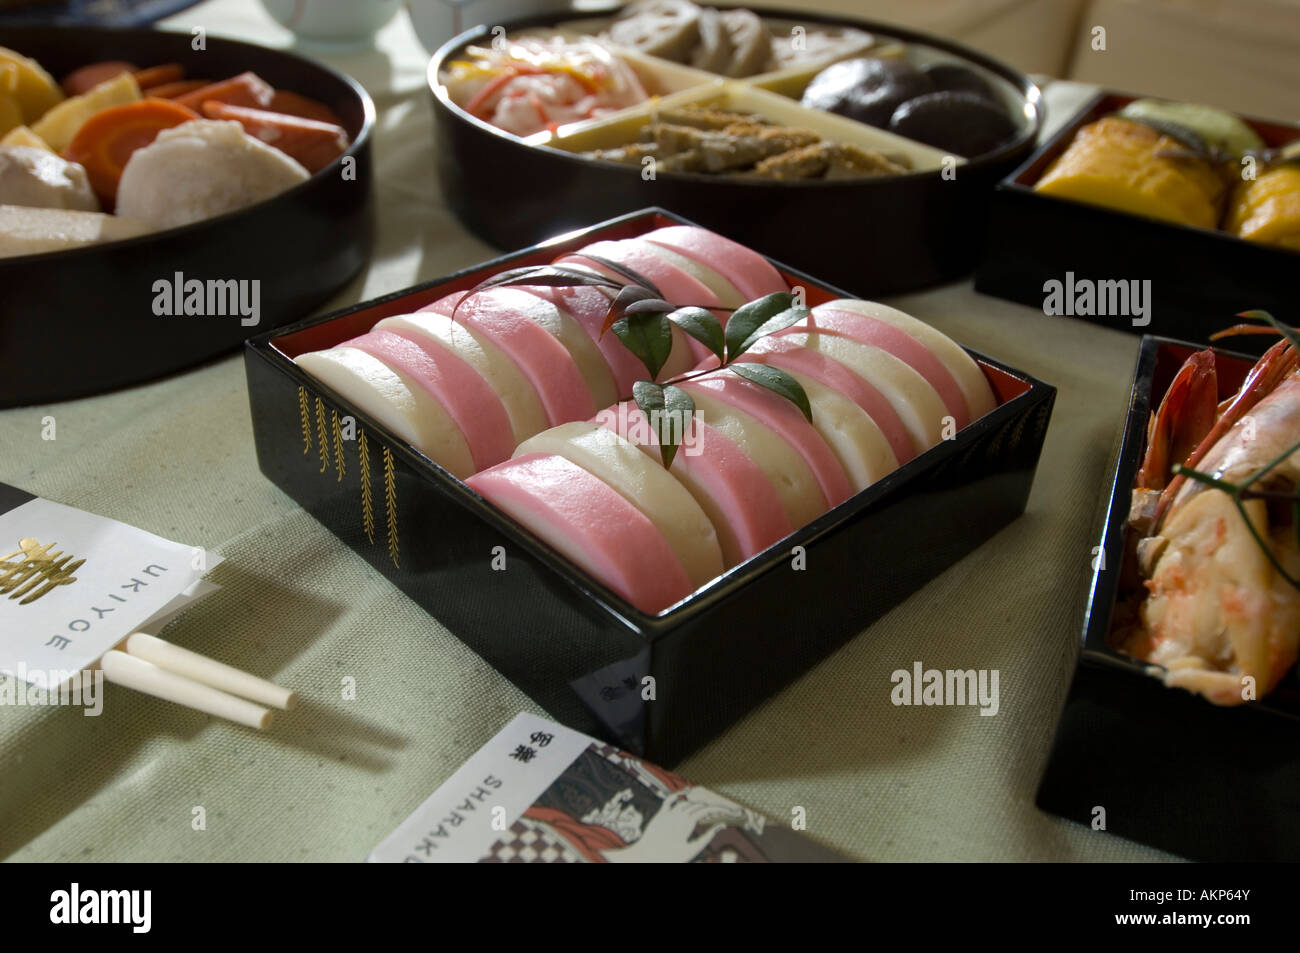 Japanese Dinner Table japanese family dinner table stock photos & japanese family dinner